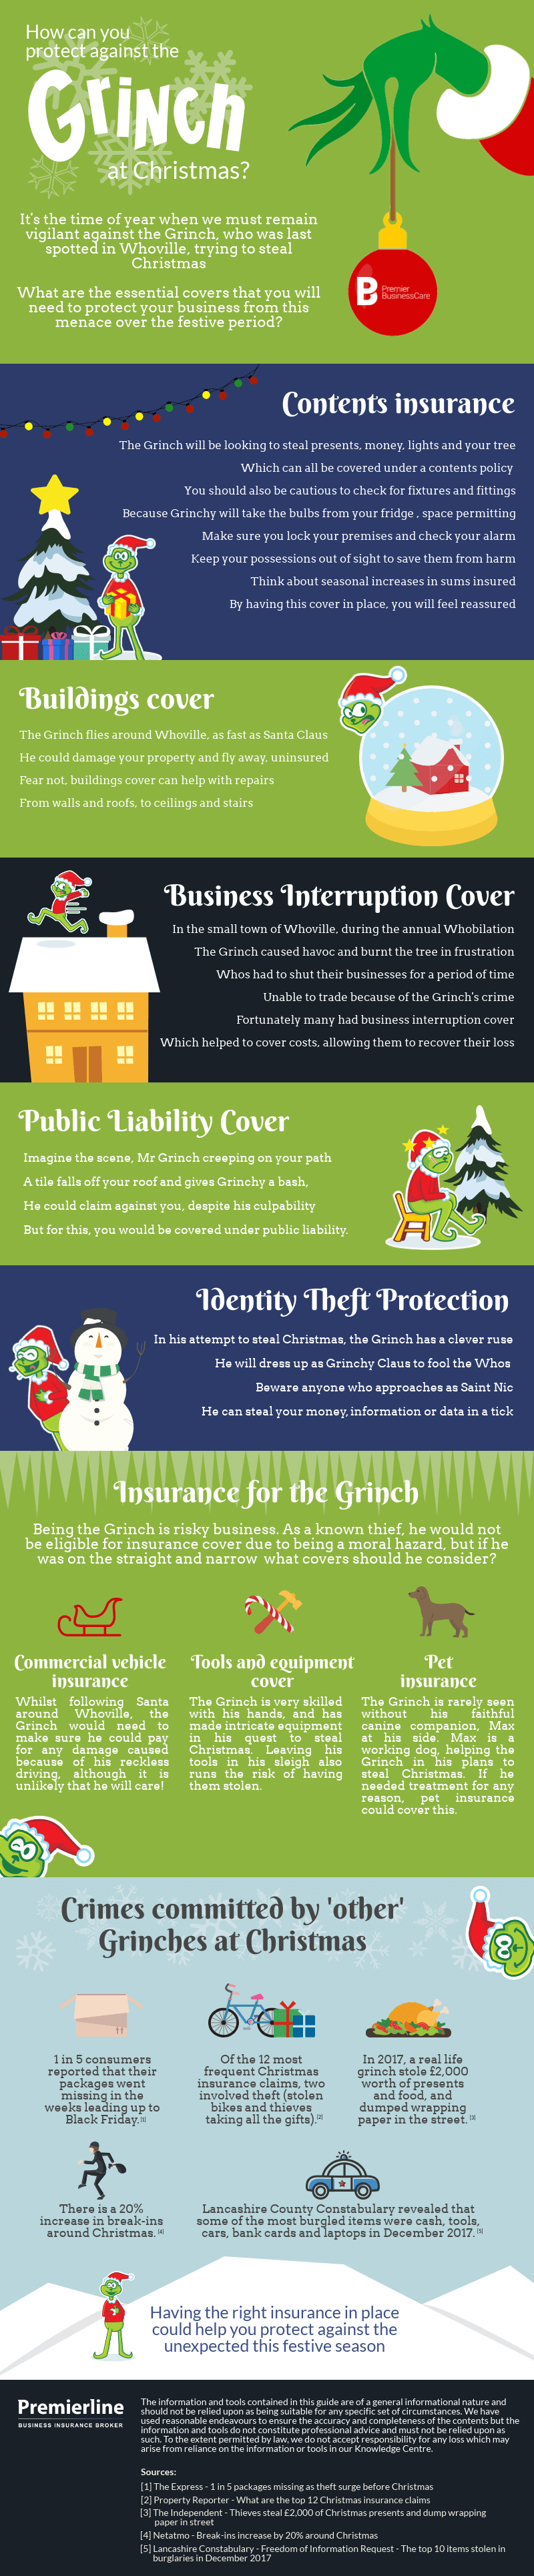 How can you protect against the Grinch at Christmas?